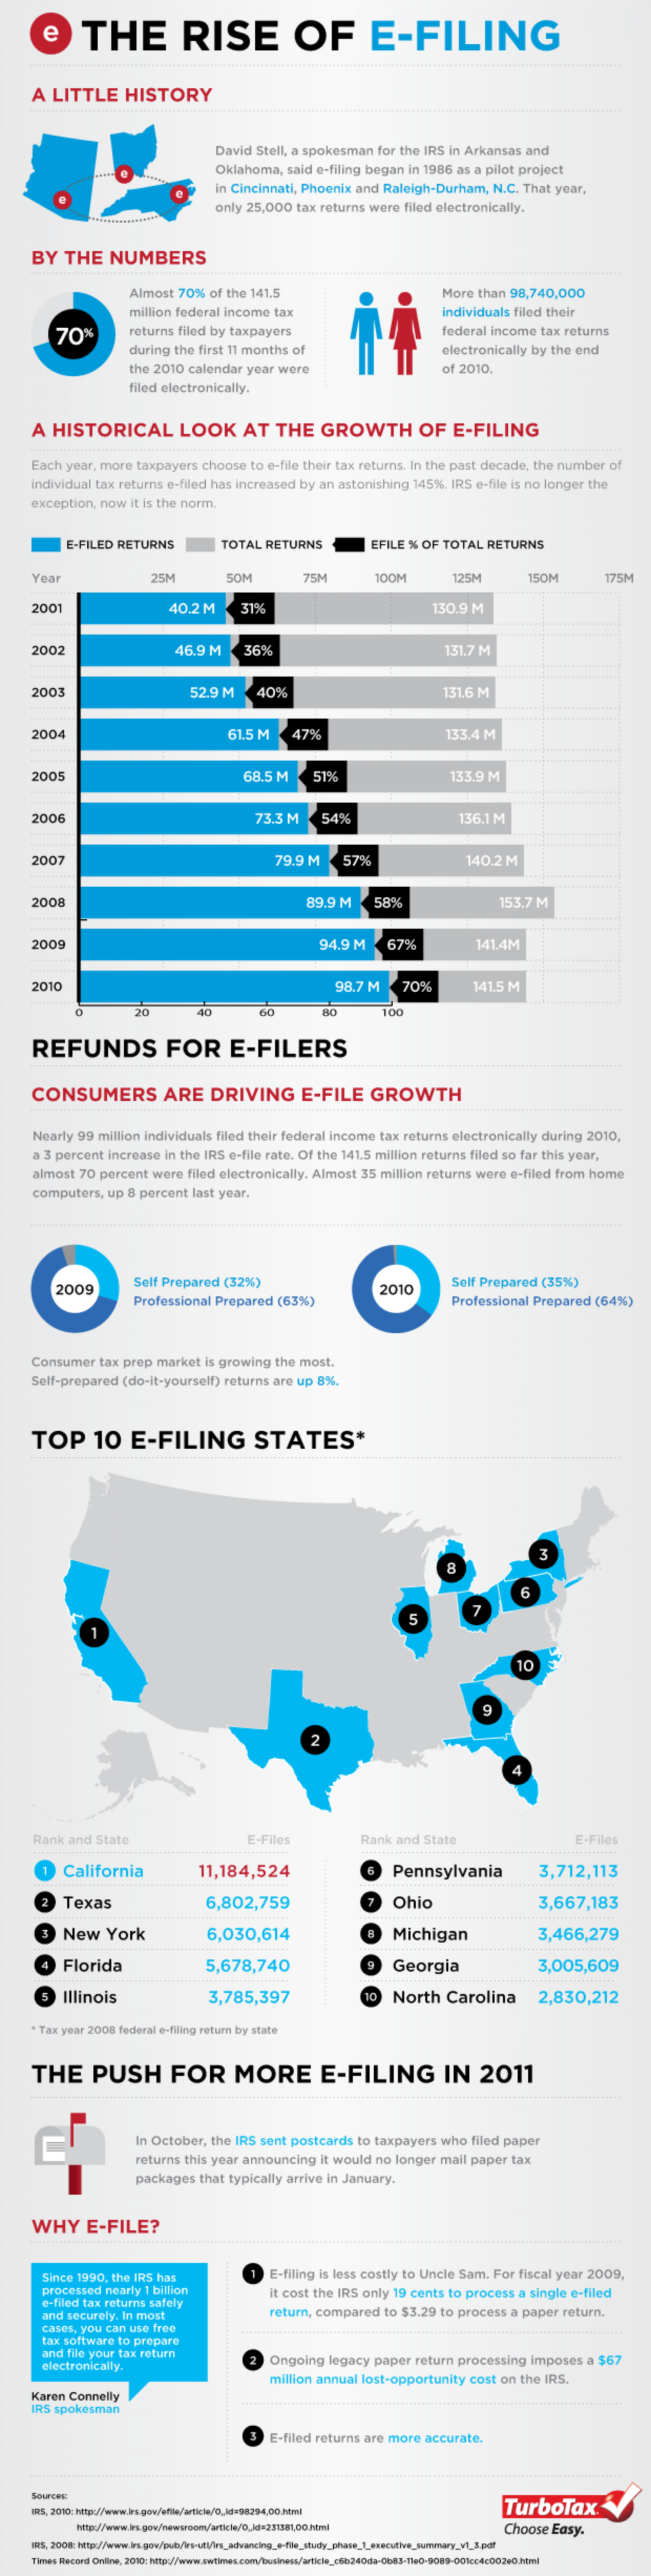 The Rise of E-Filing Infographic